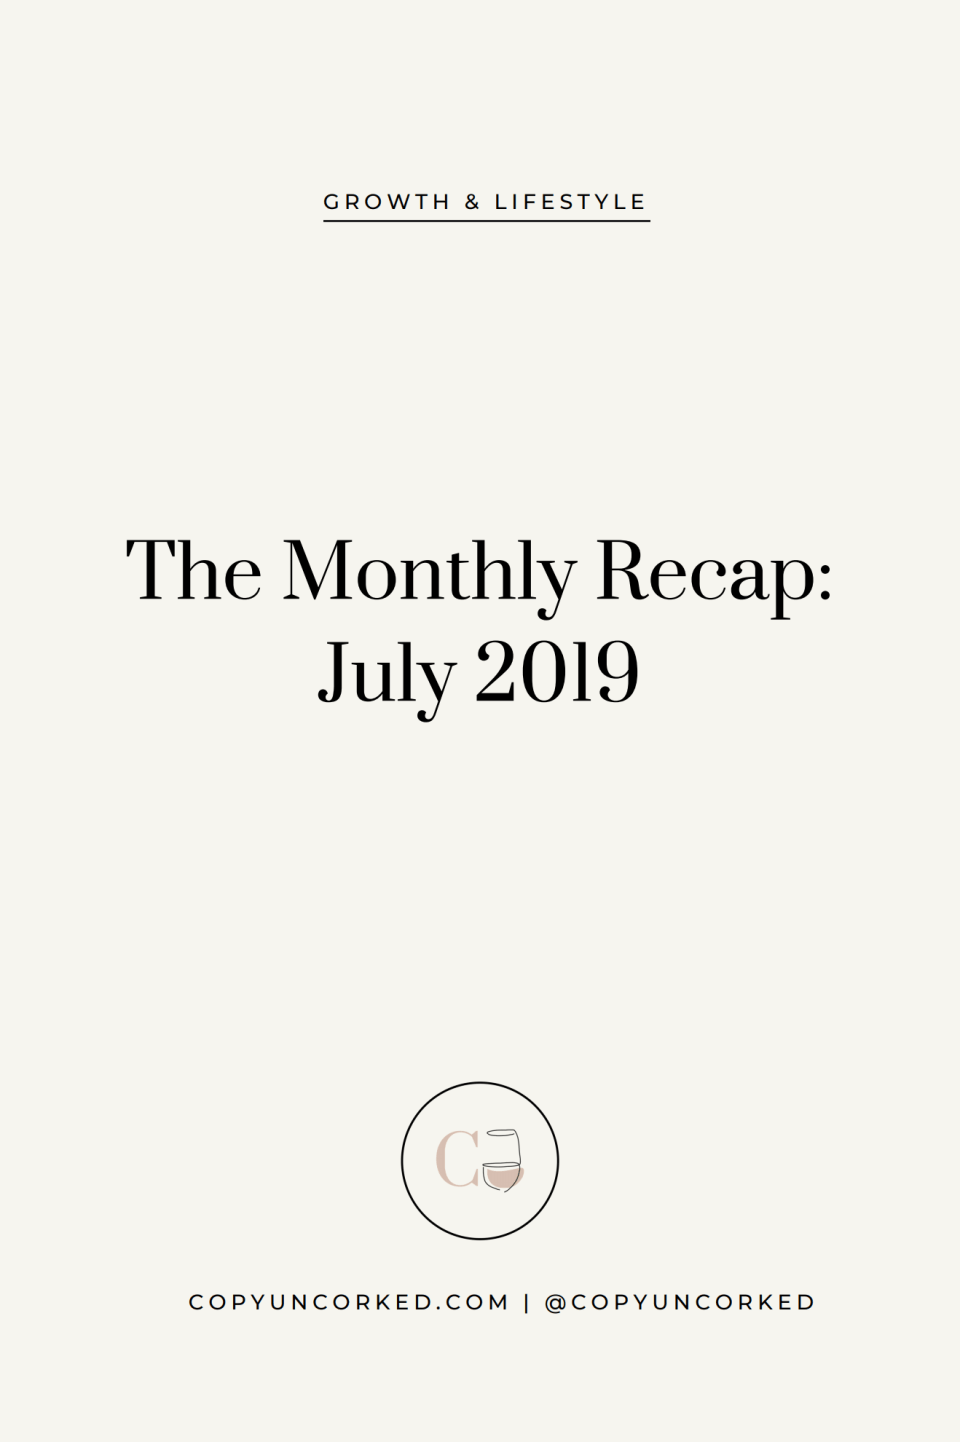 The Monthly Recap: July 2019 - Copy Uncorked - copyuncorked.com/blog